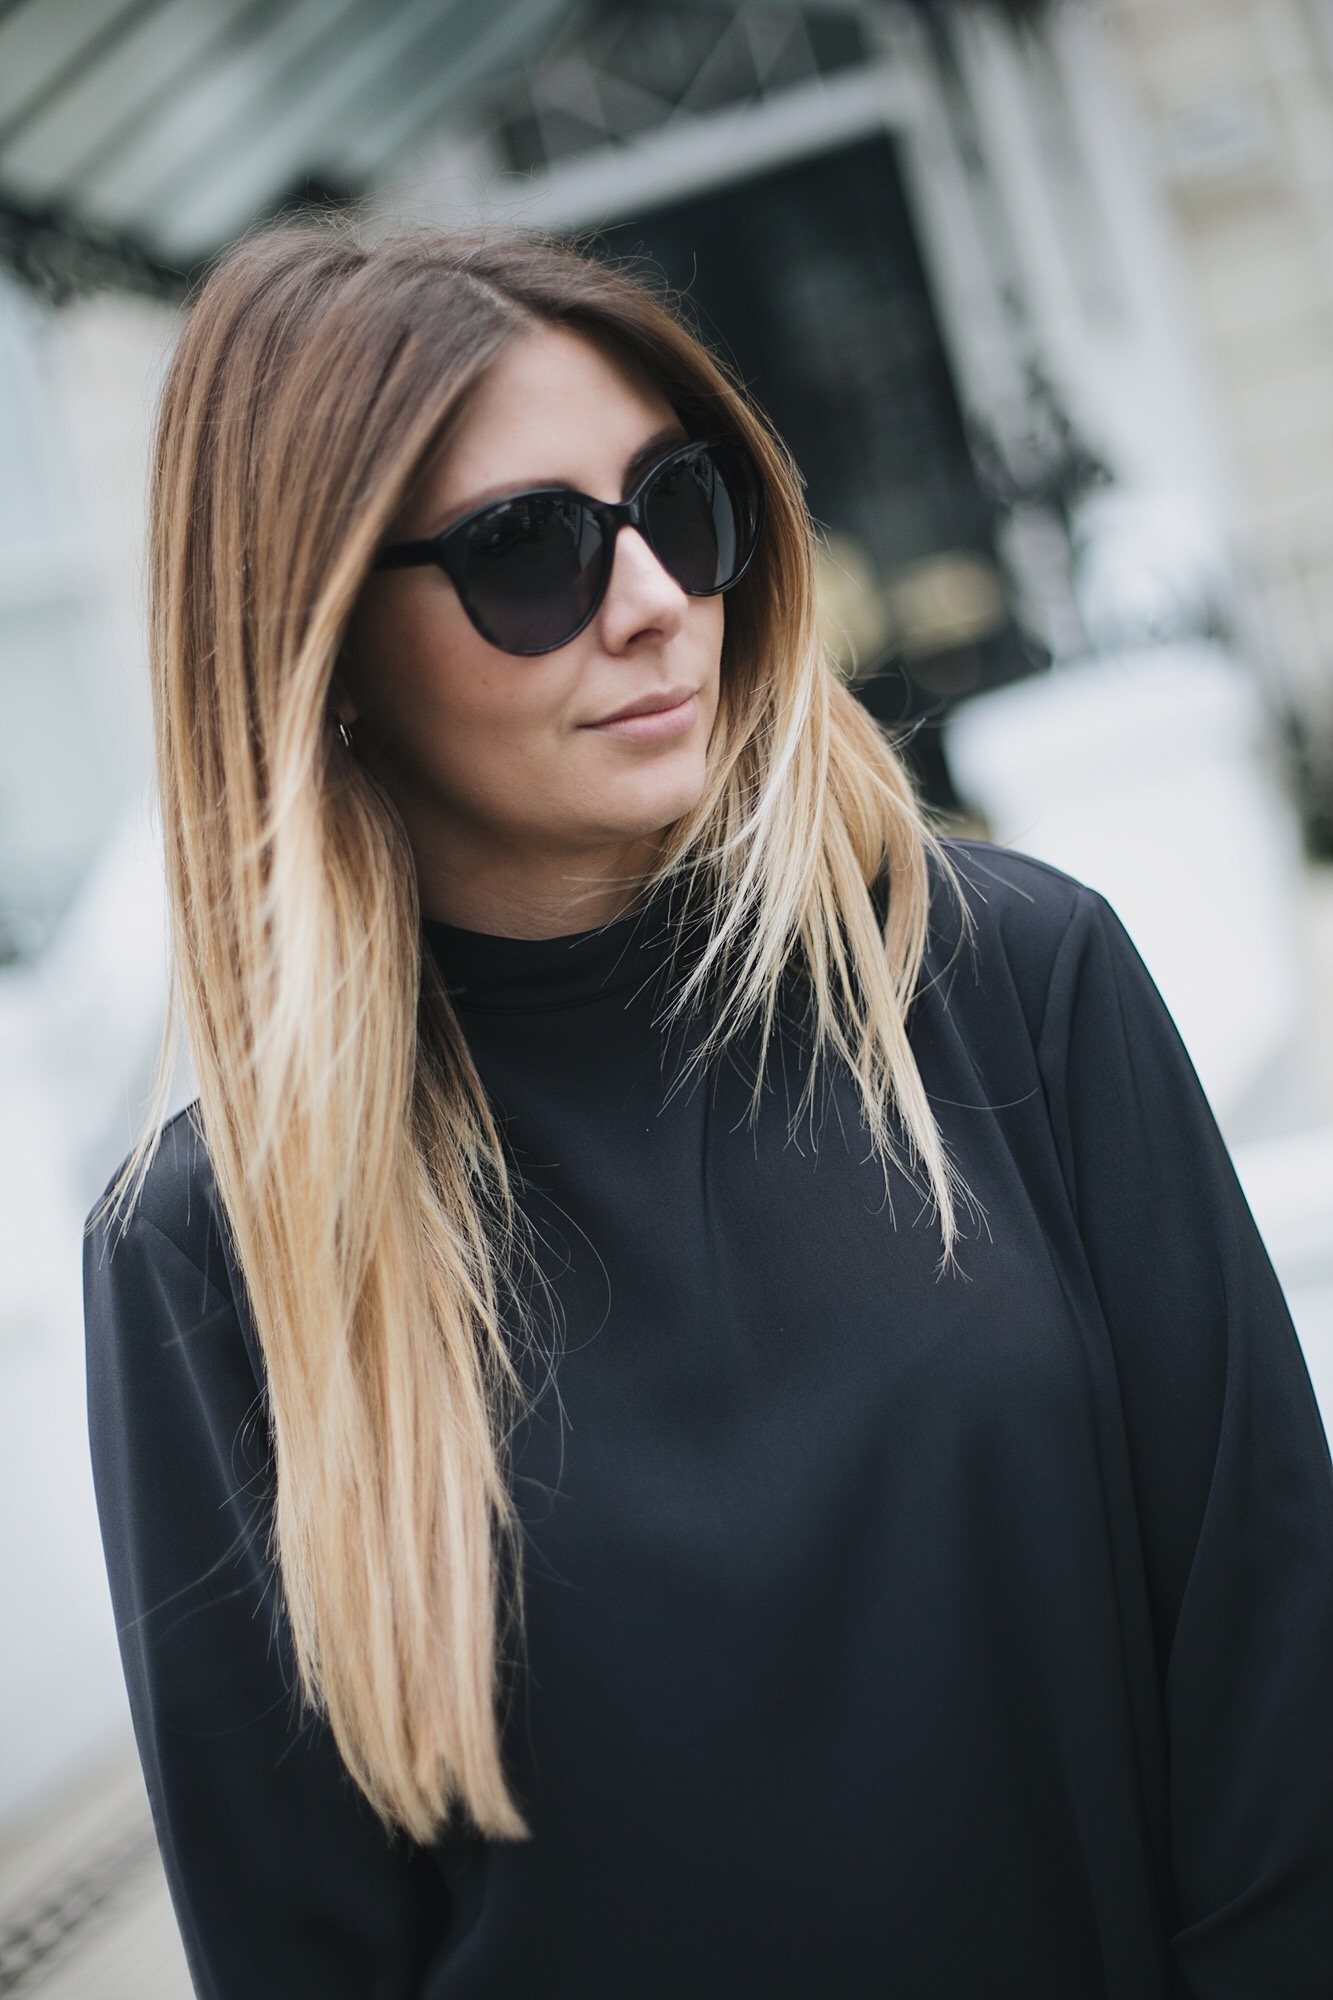 cat eye sunglasses, black dress